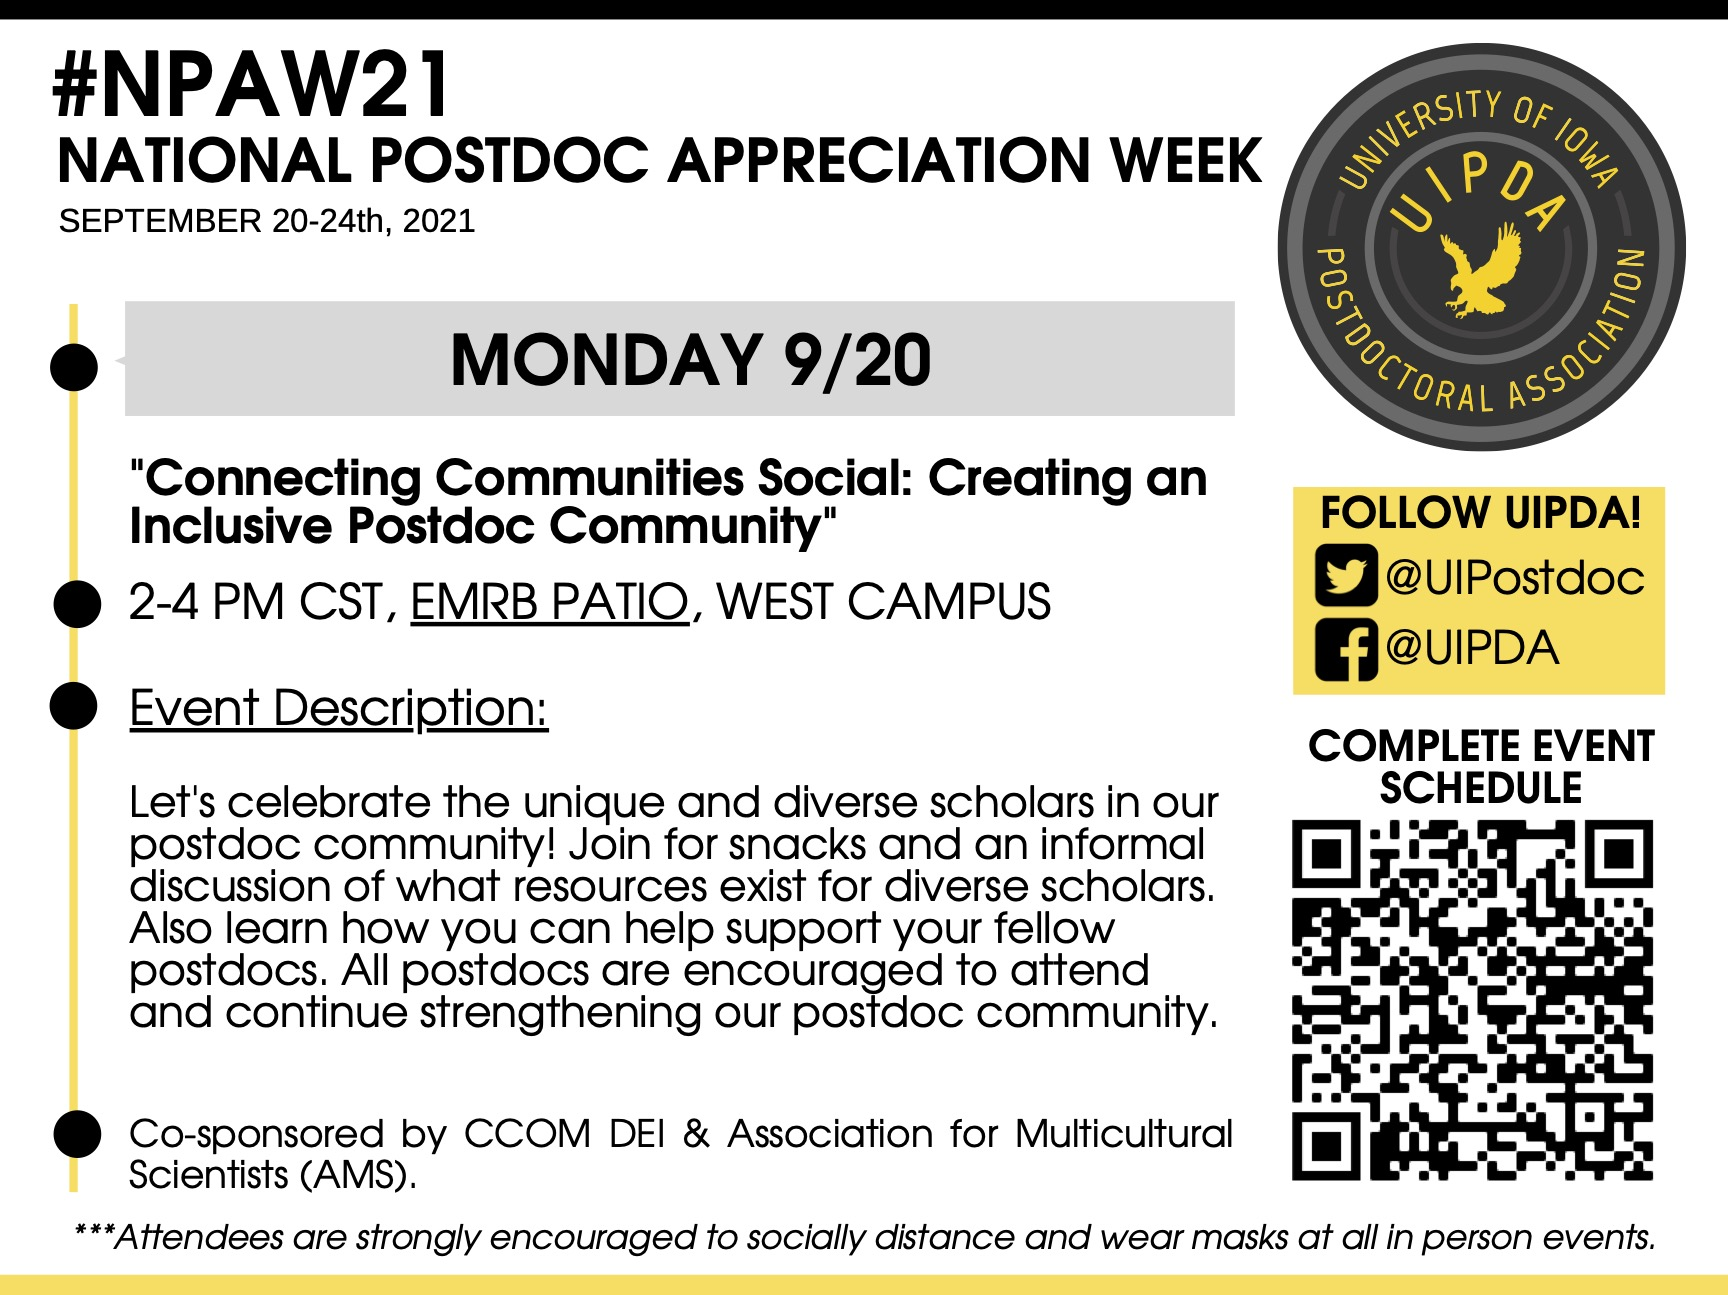 National Postdoc Appreciation Week: Connecting Communities Social: Creating an Inclusive Postdoc Community promotional image